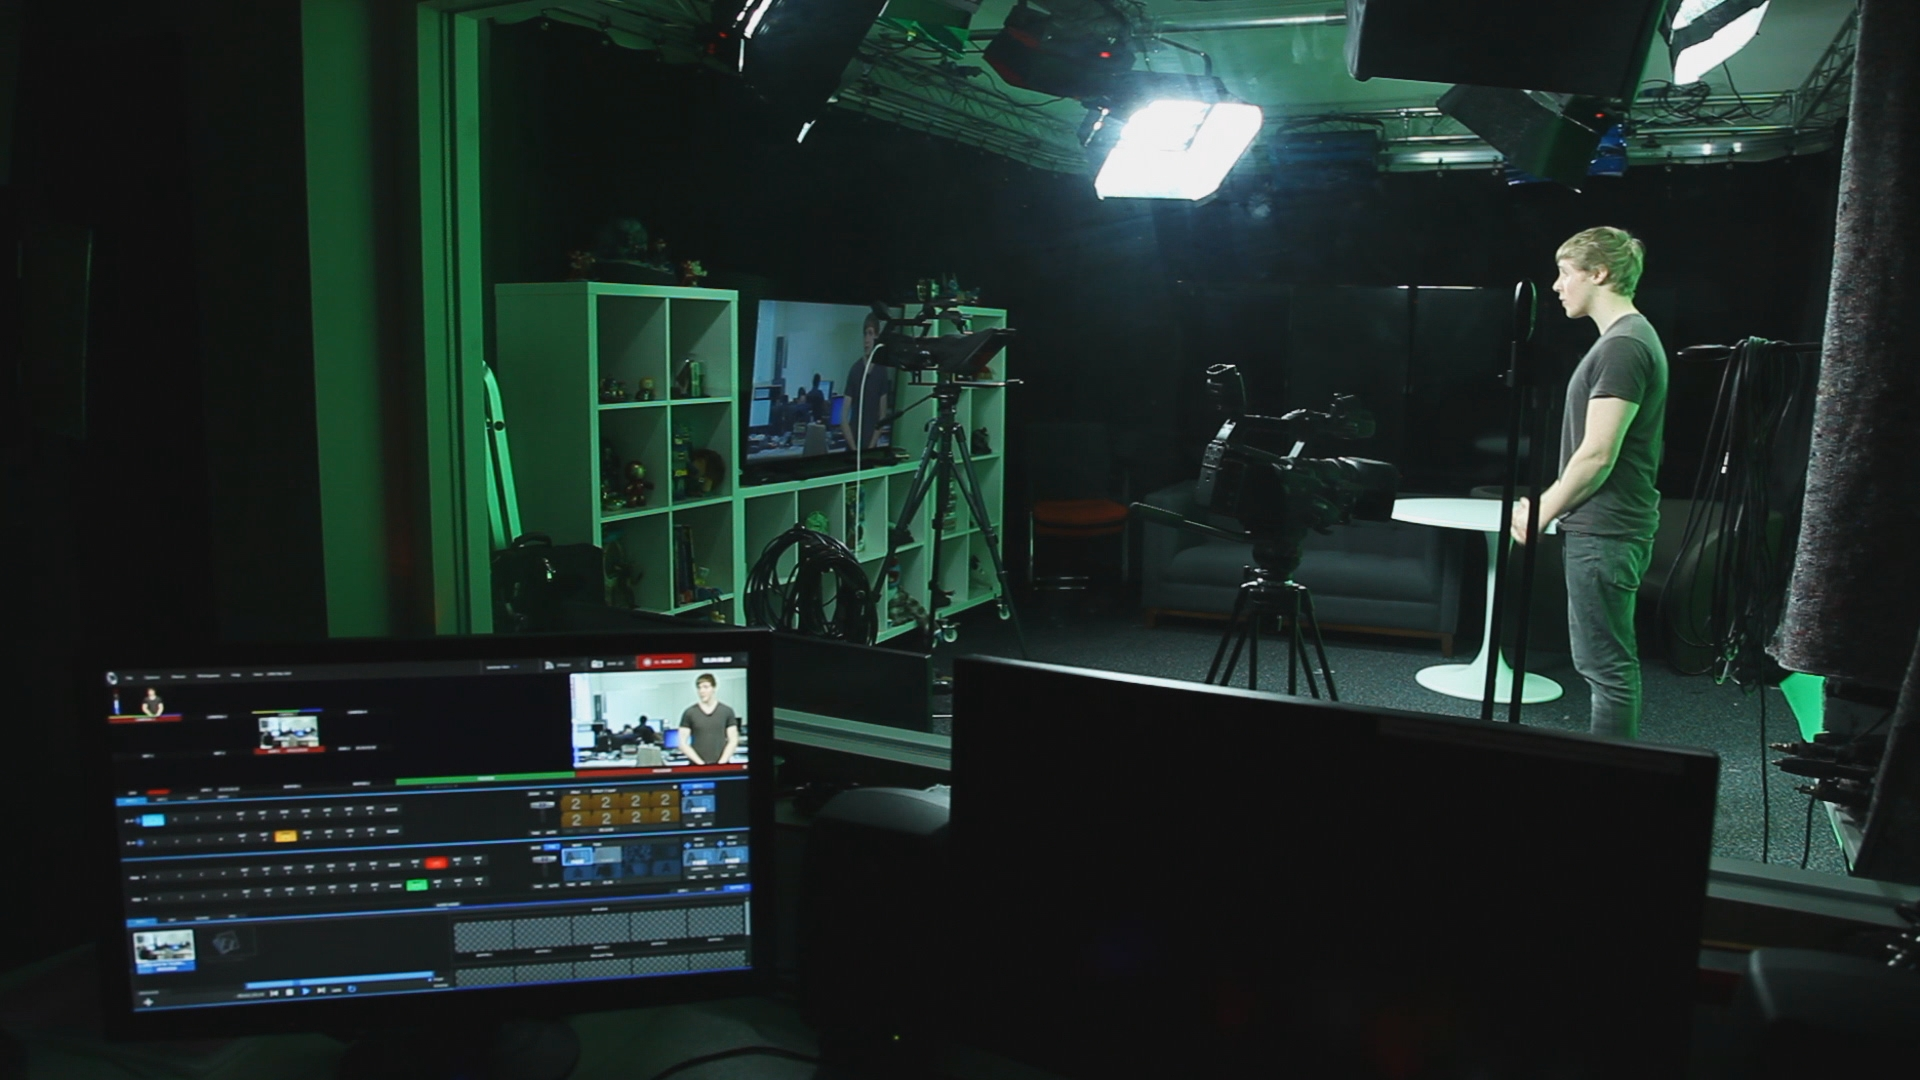 NEWTEK IGN STILL 28